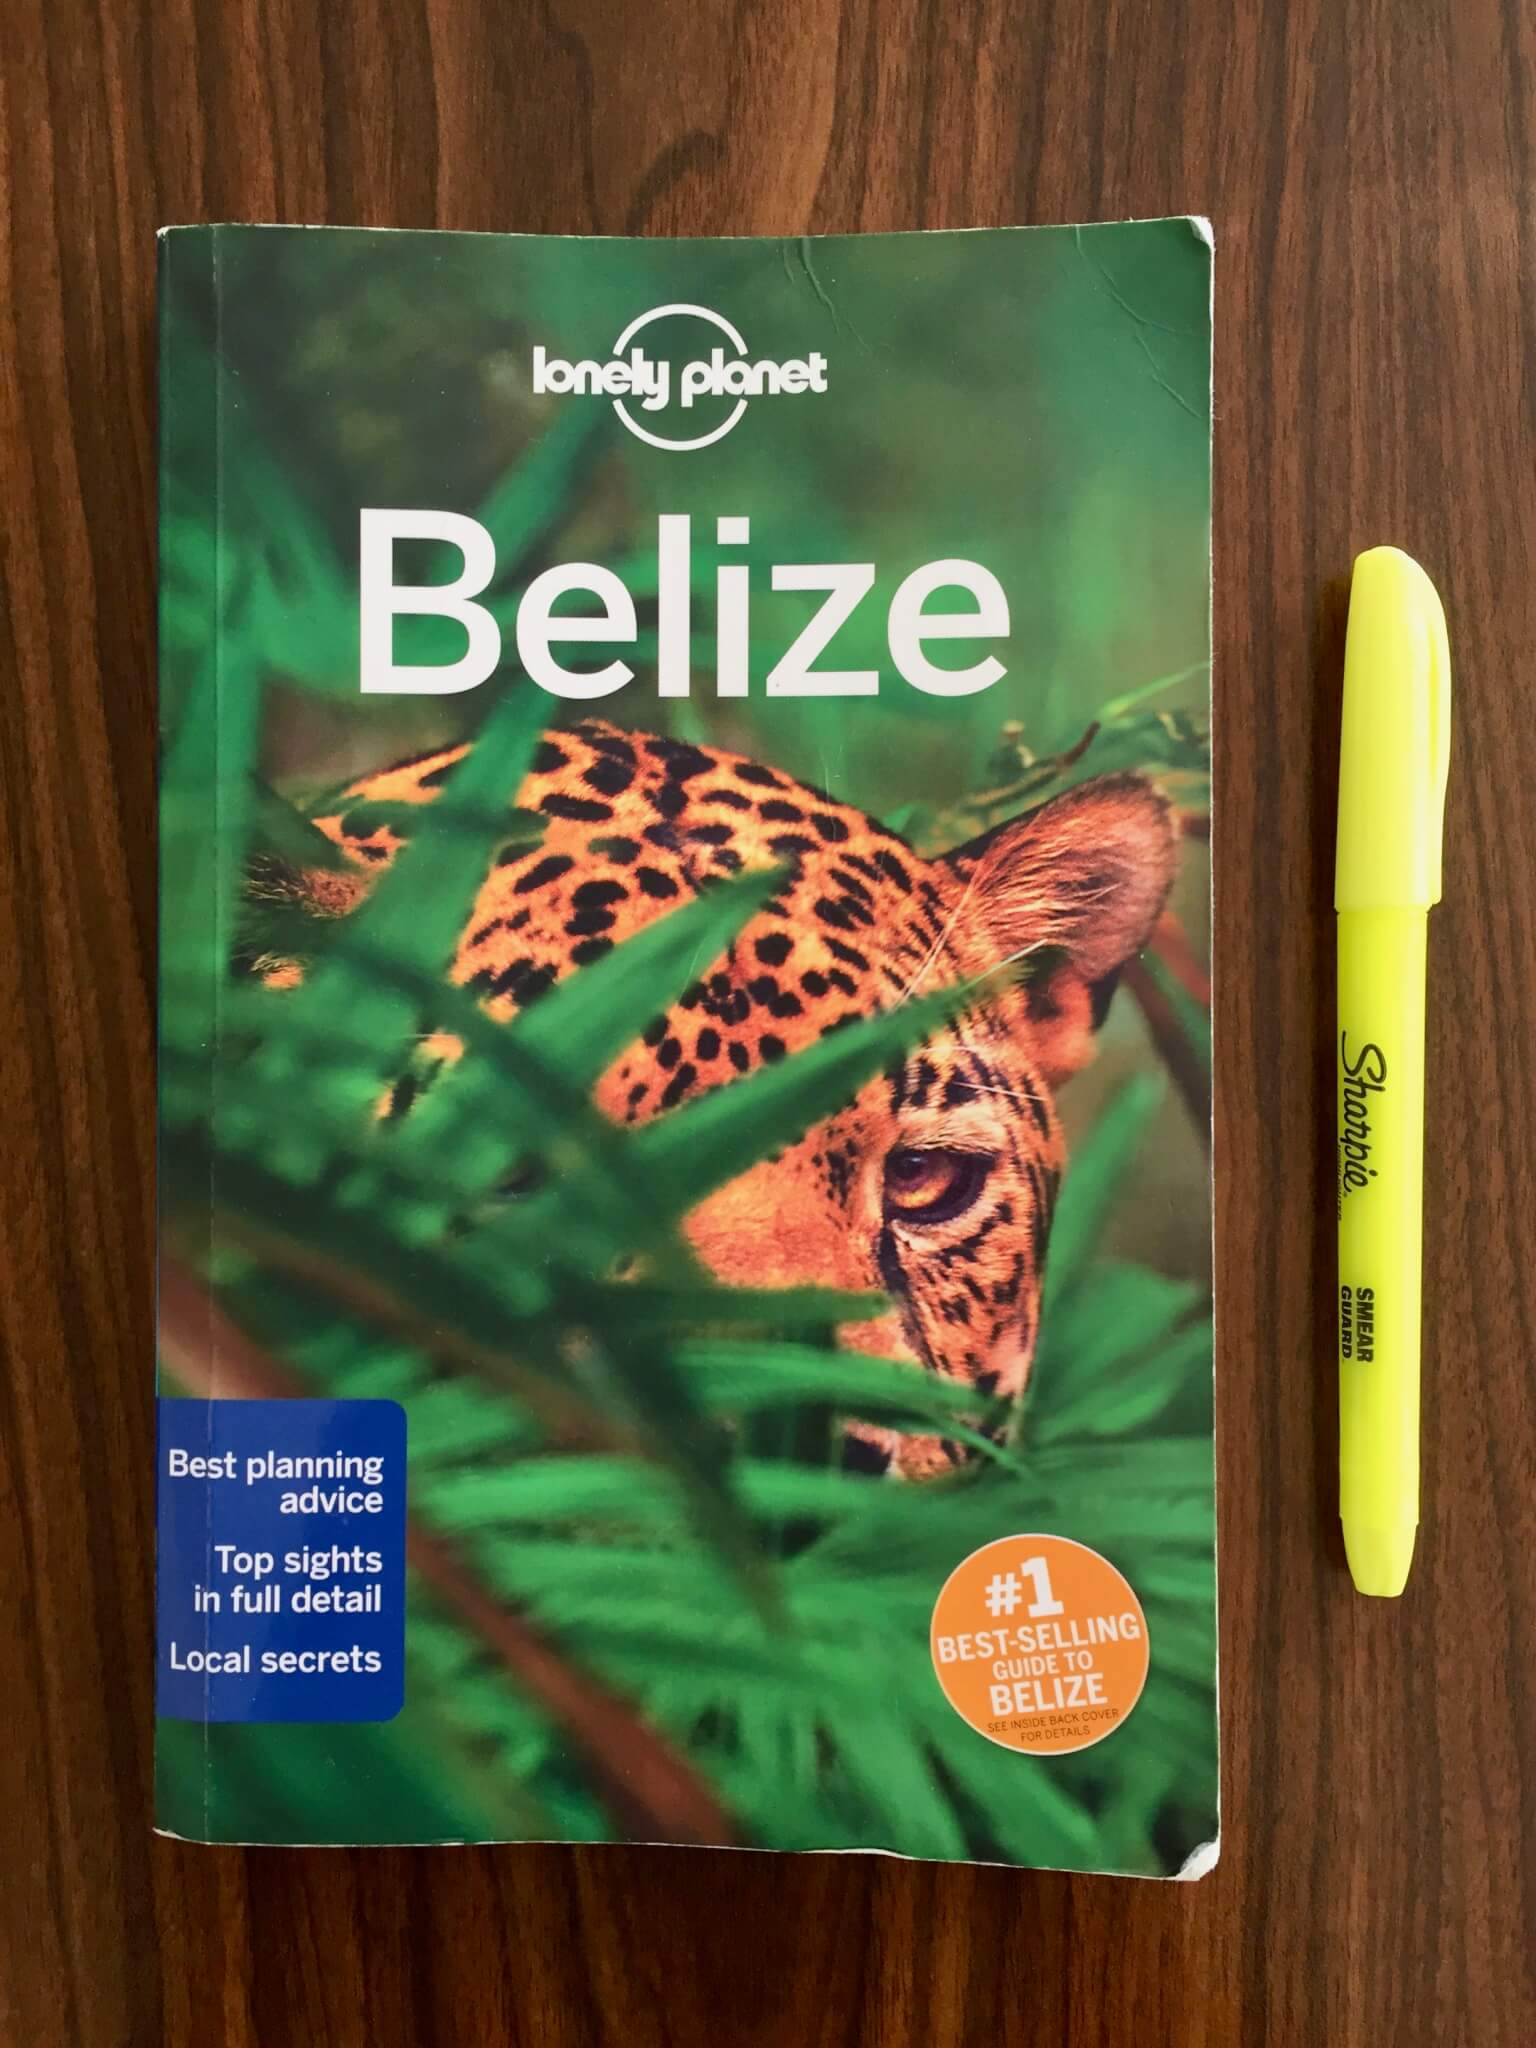 Belize Lonely Planet guidebook on a wooden table with yellow highlighter